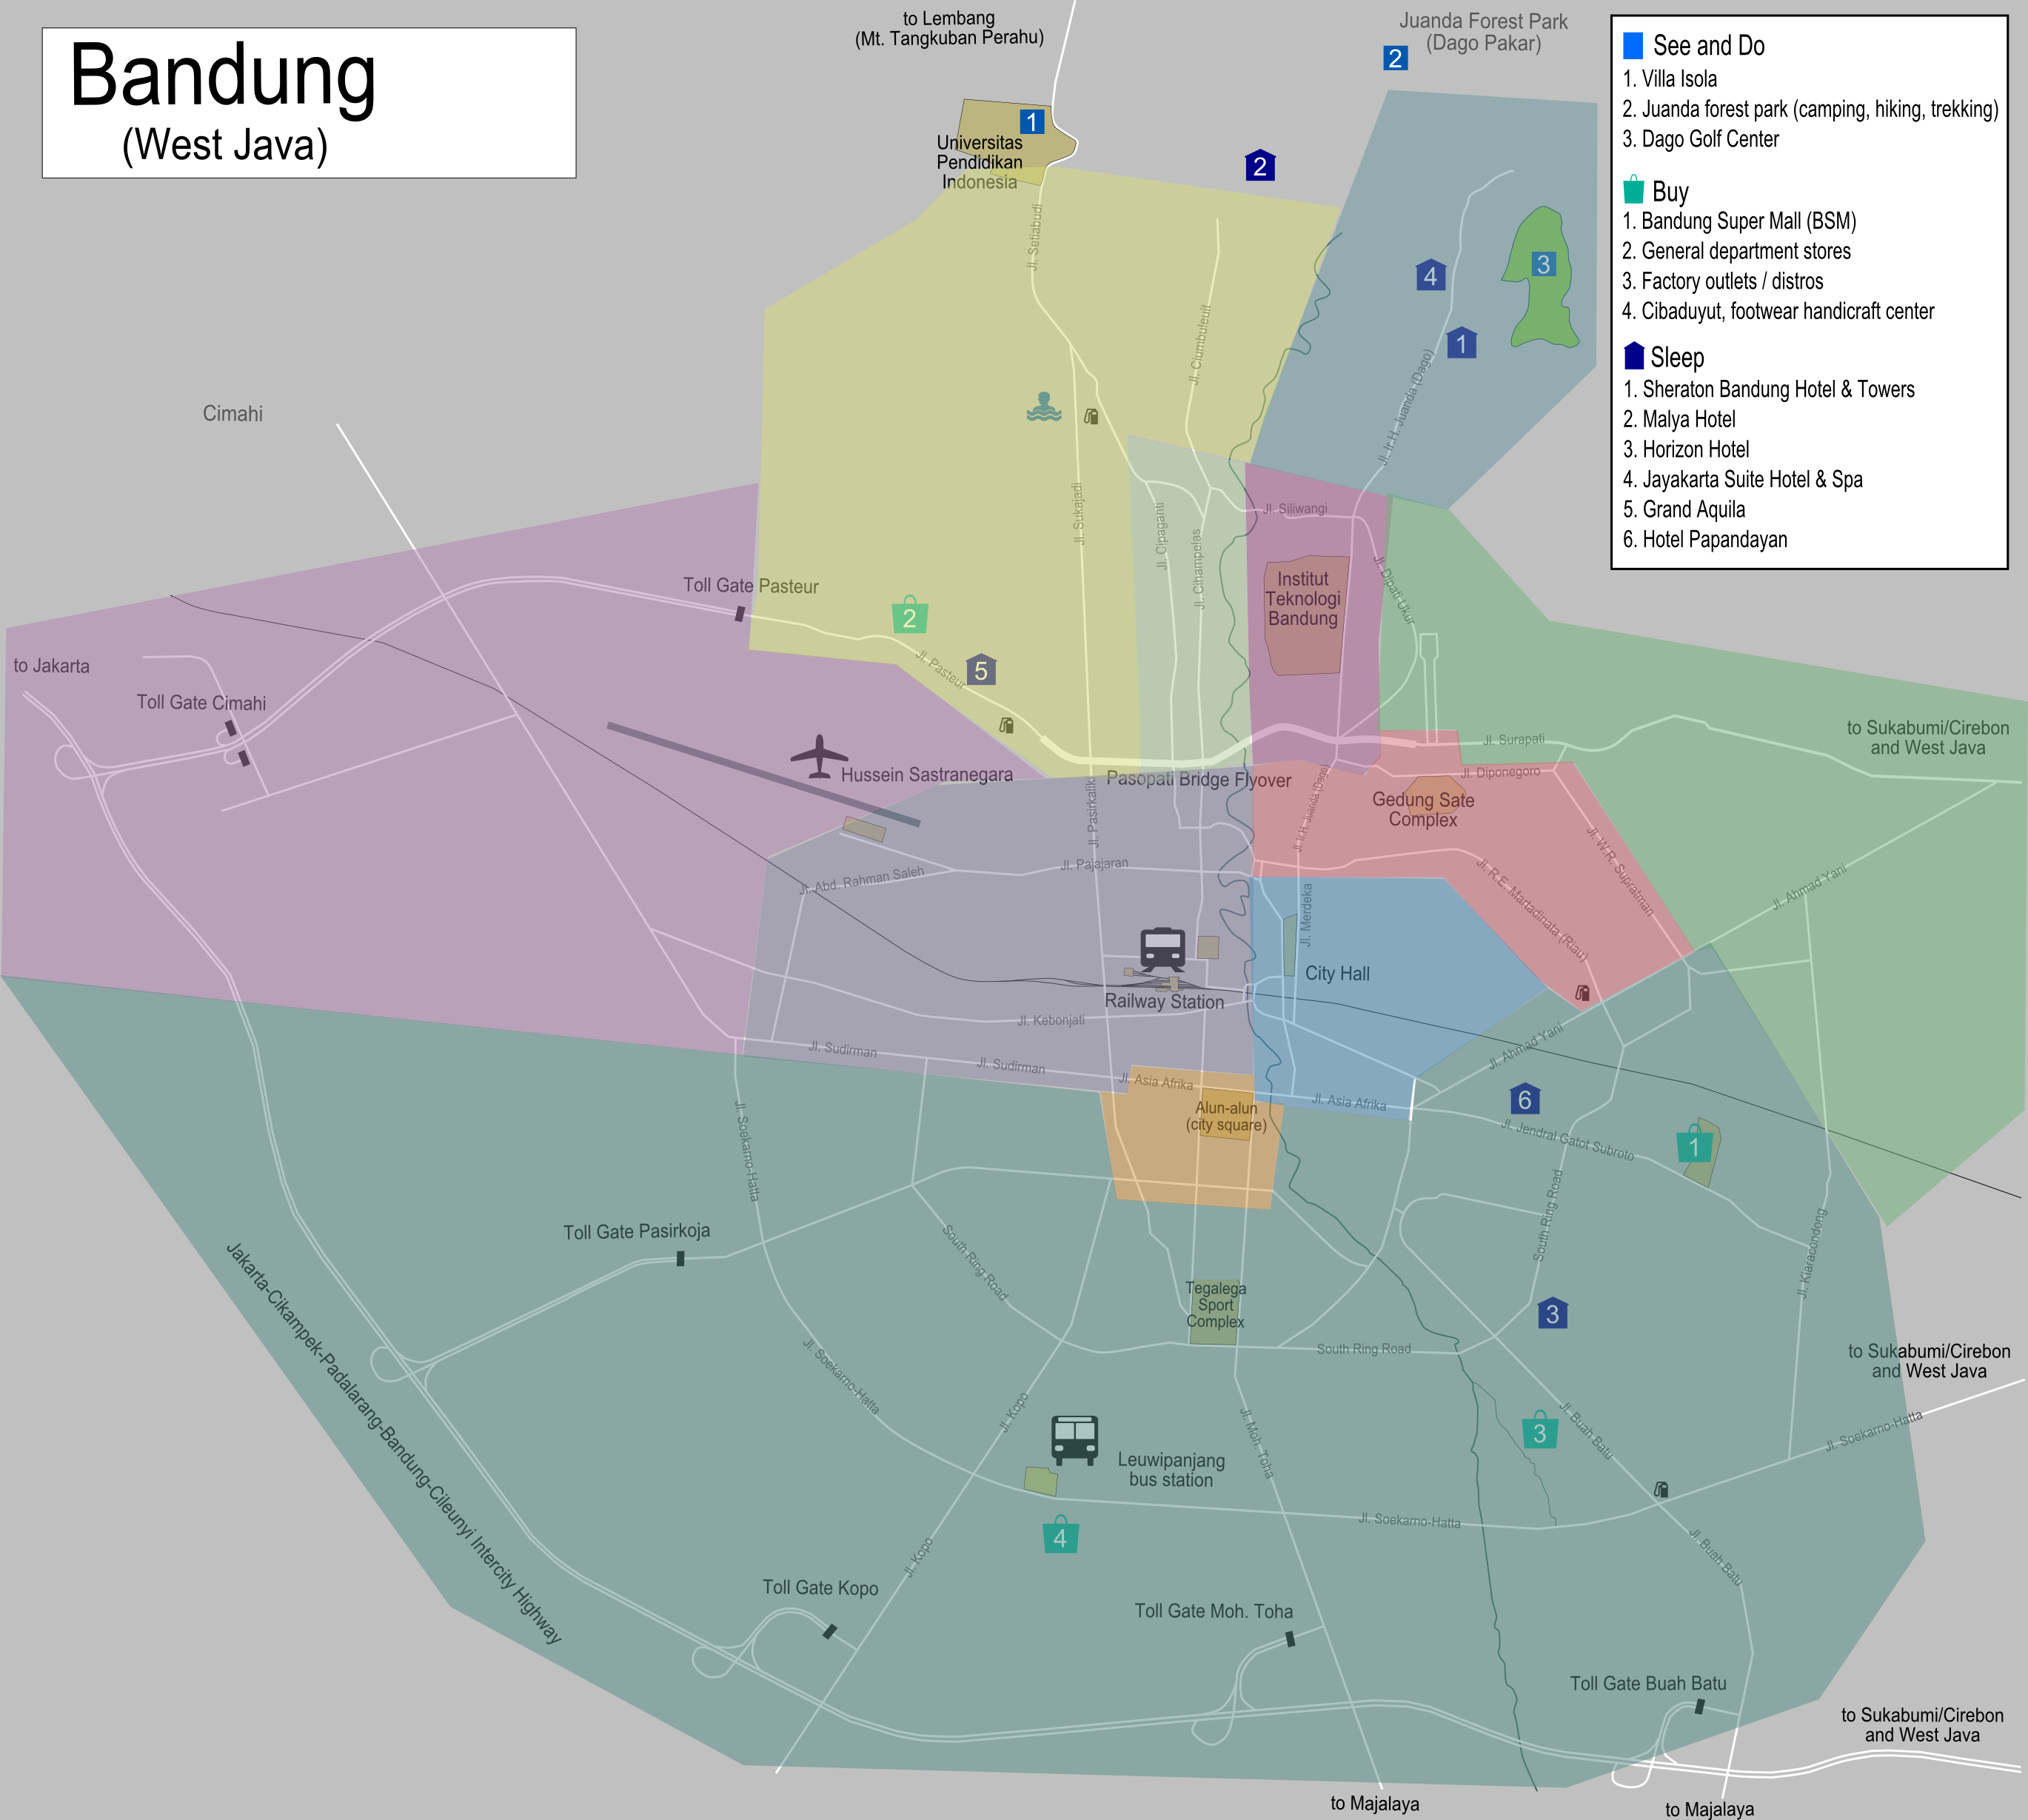 FileBandung mappng Wikimedia Commons